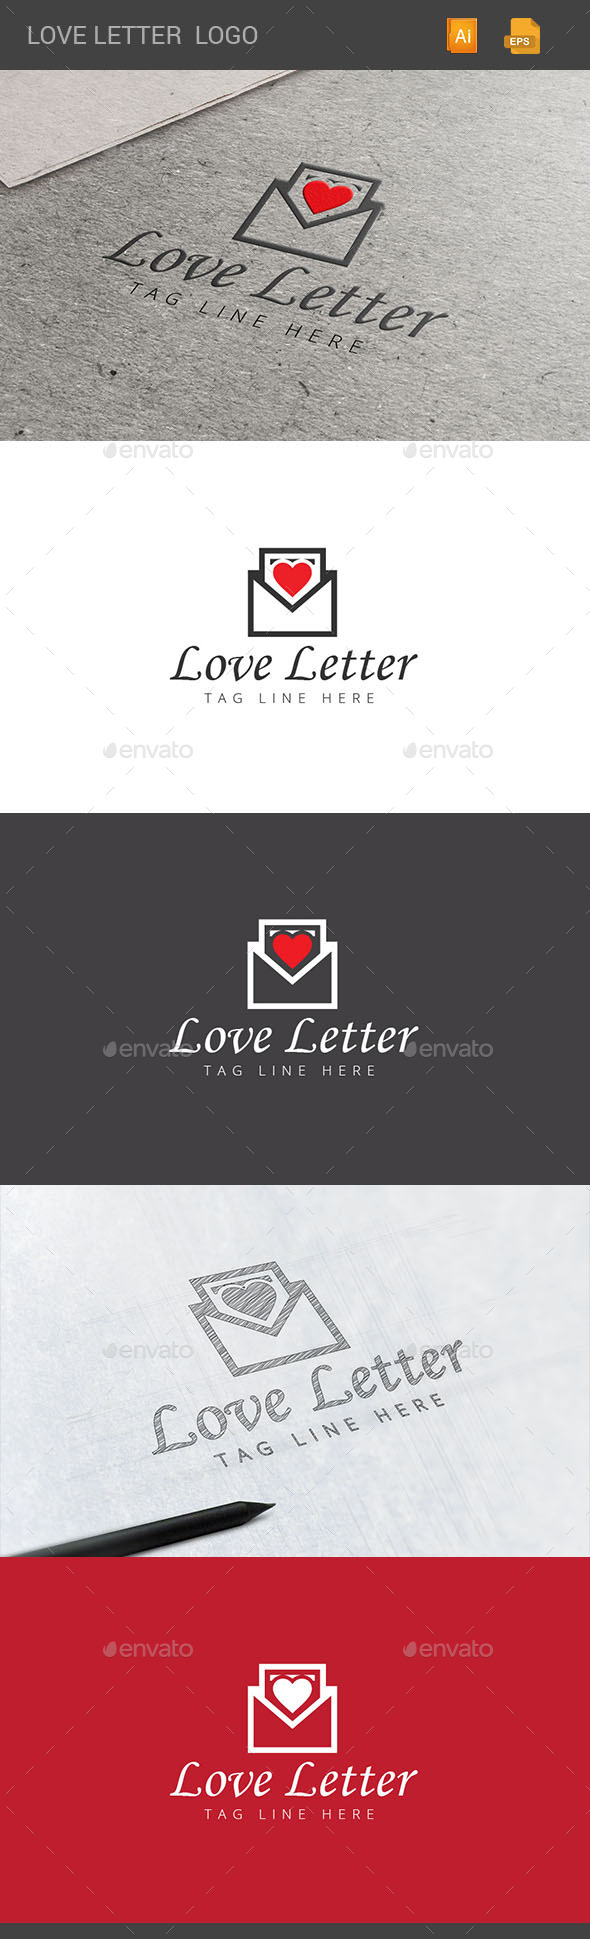 GraphicRiver Love Letter Logo 11048011